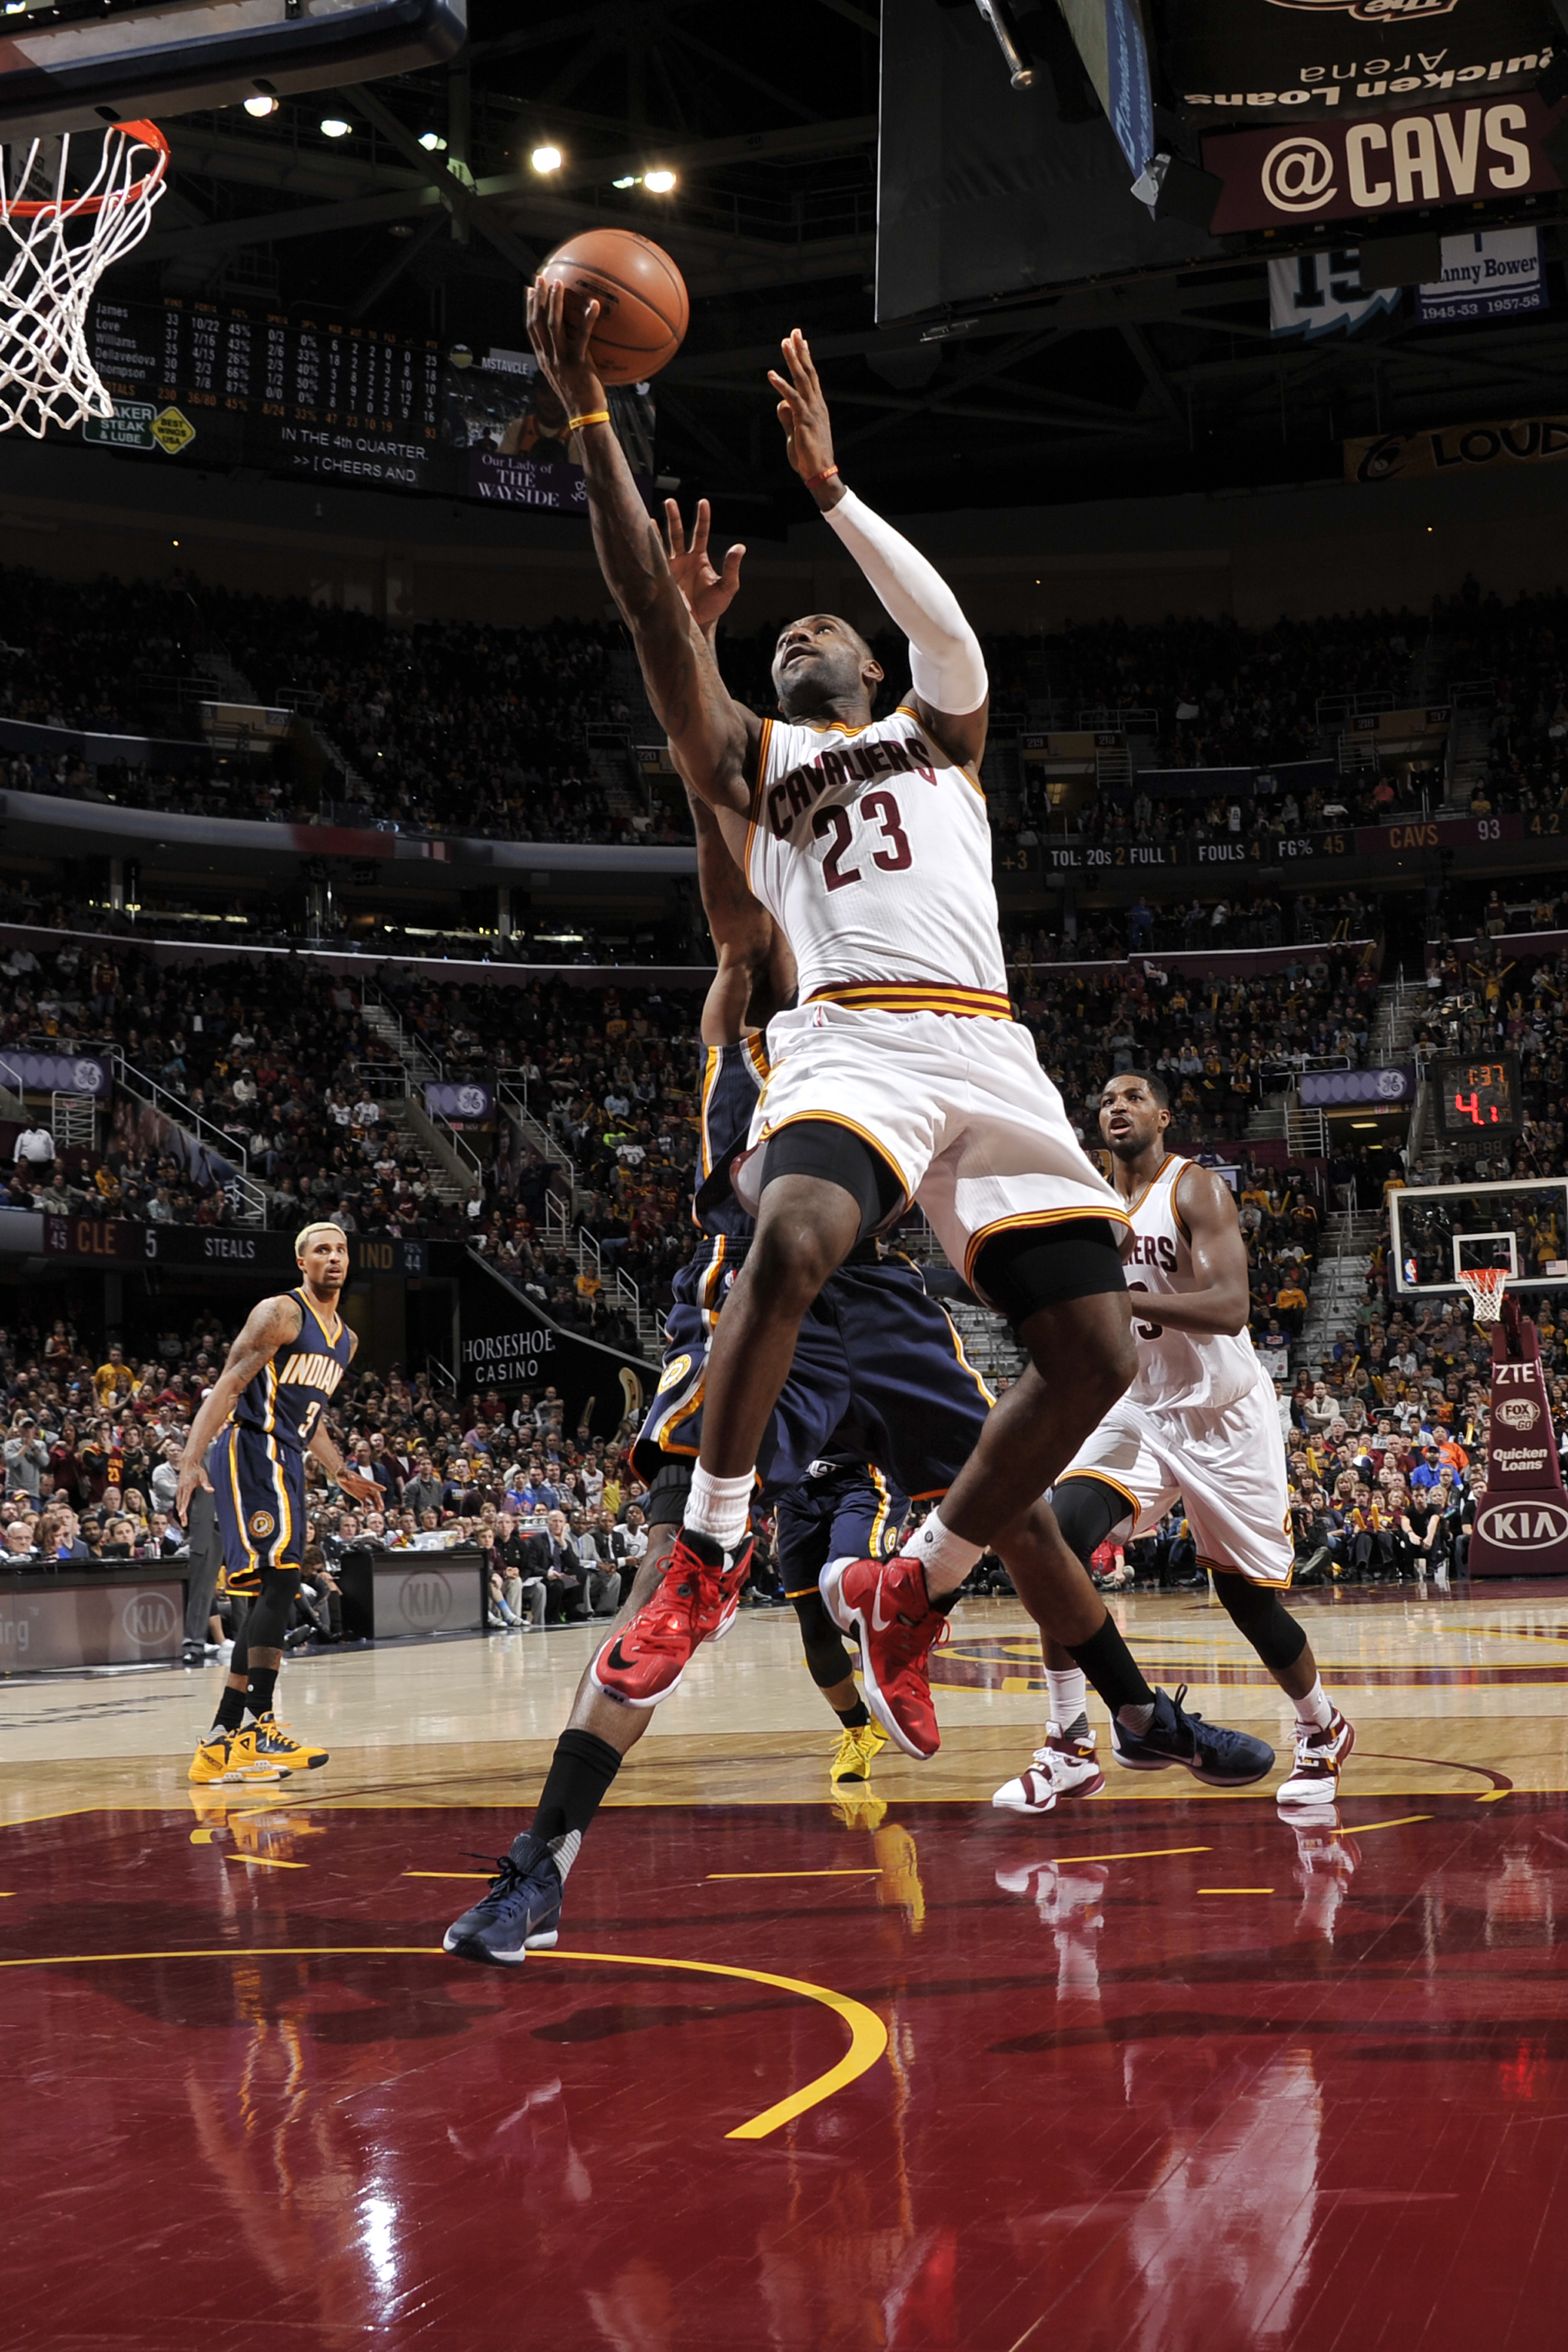 CLEVELAND, OH - NOVEMBER 8:  LeBron James #23 of the Cleveland Cavaliers shoots the ball against the Indiana Pacers on November 8, 2015 at Quicken Loans Arena in Cleveland, Ohio. (Photo by David Liam Kyle/NBAE via Getty Images)